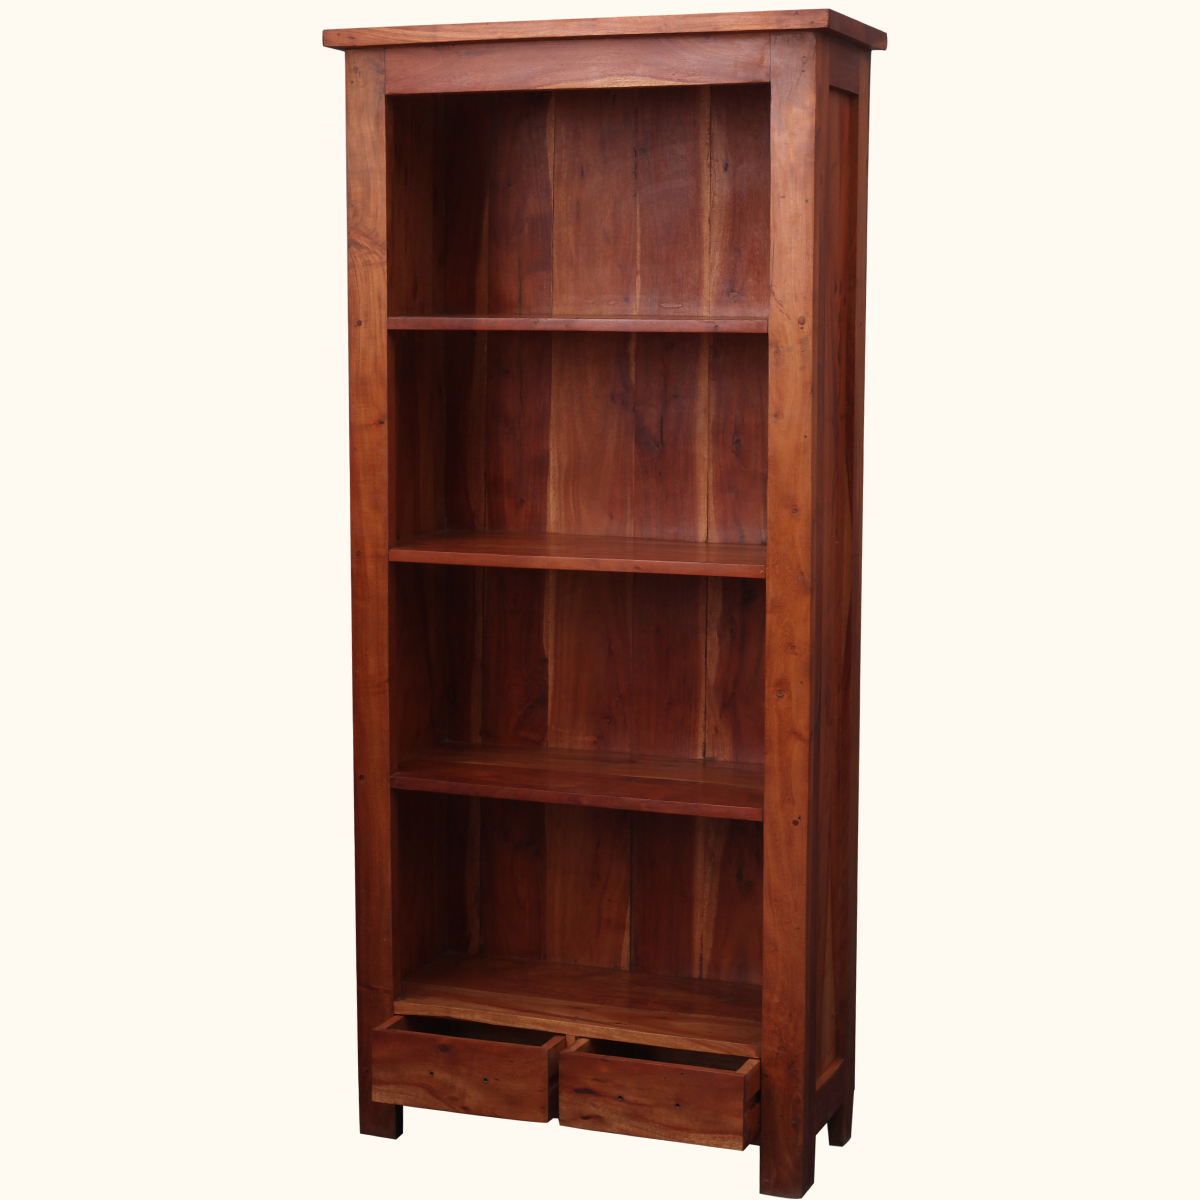 Large Wooden Bookcases ~ Large rustic shelf bookcase solid acacia wood modern